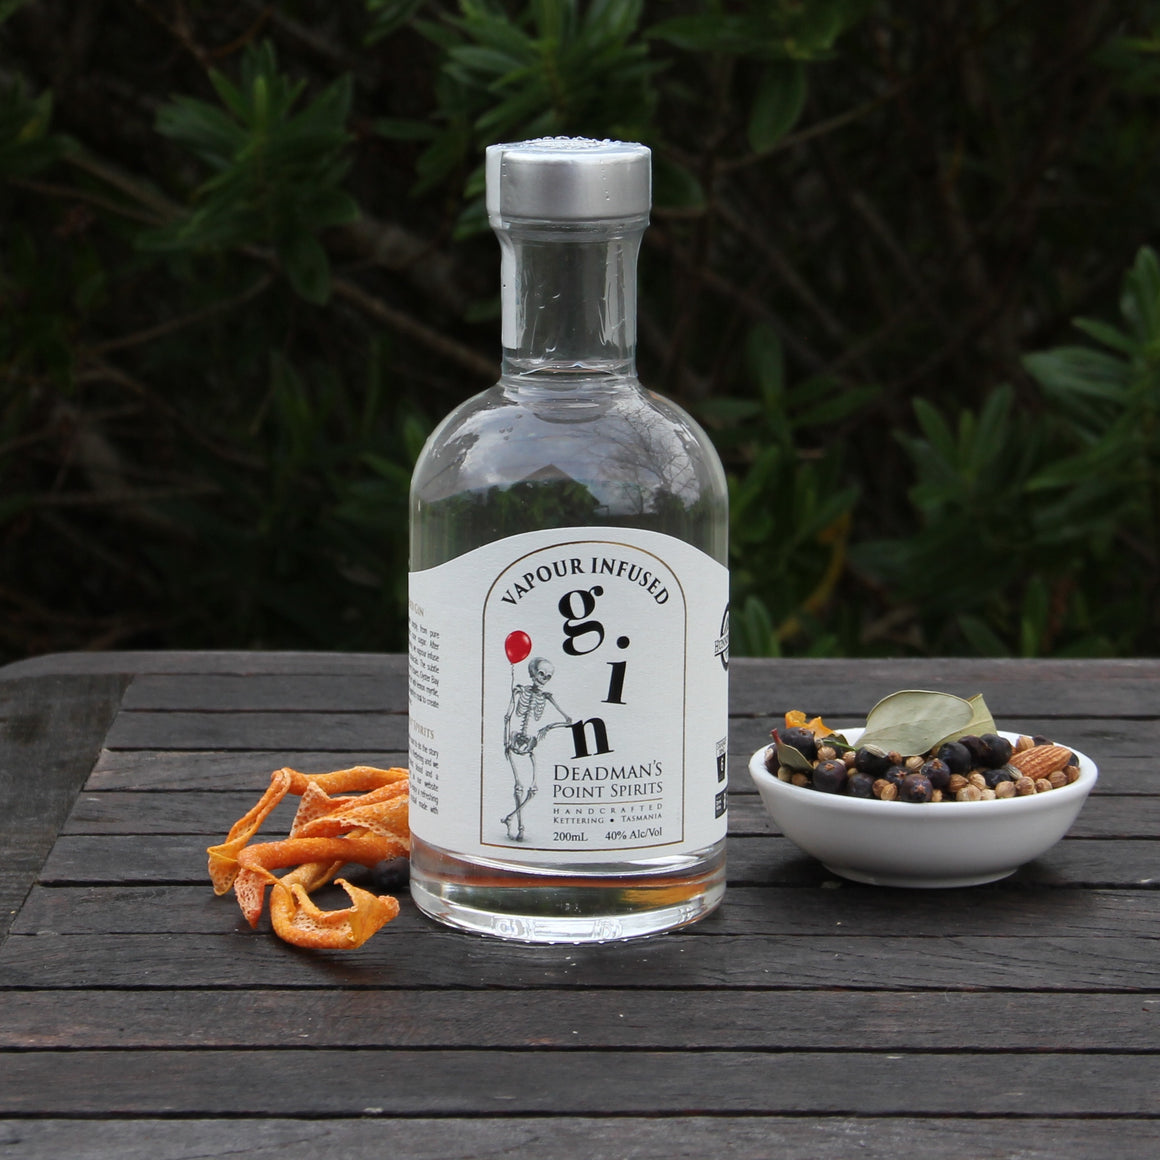 Vapour Infused Gin (200ml)